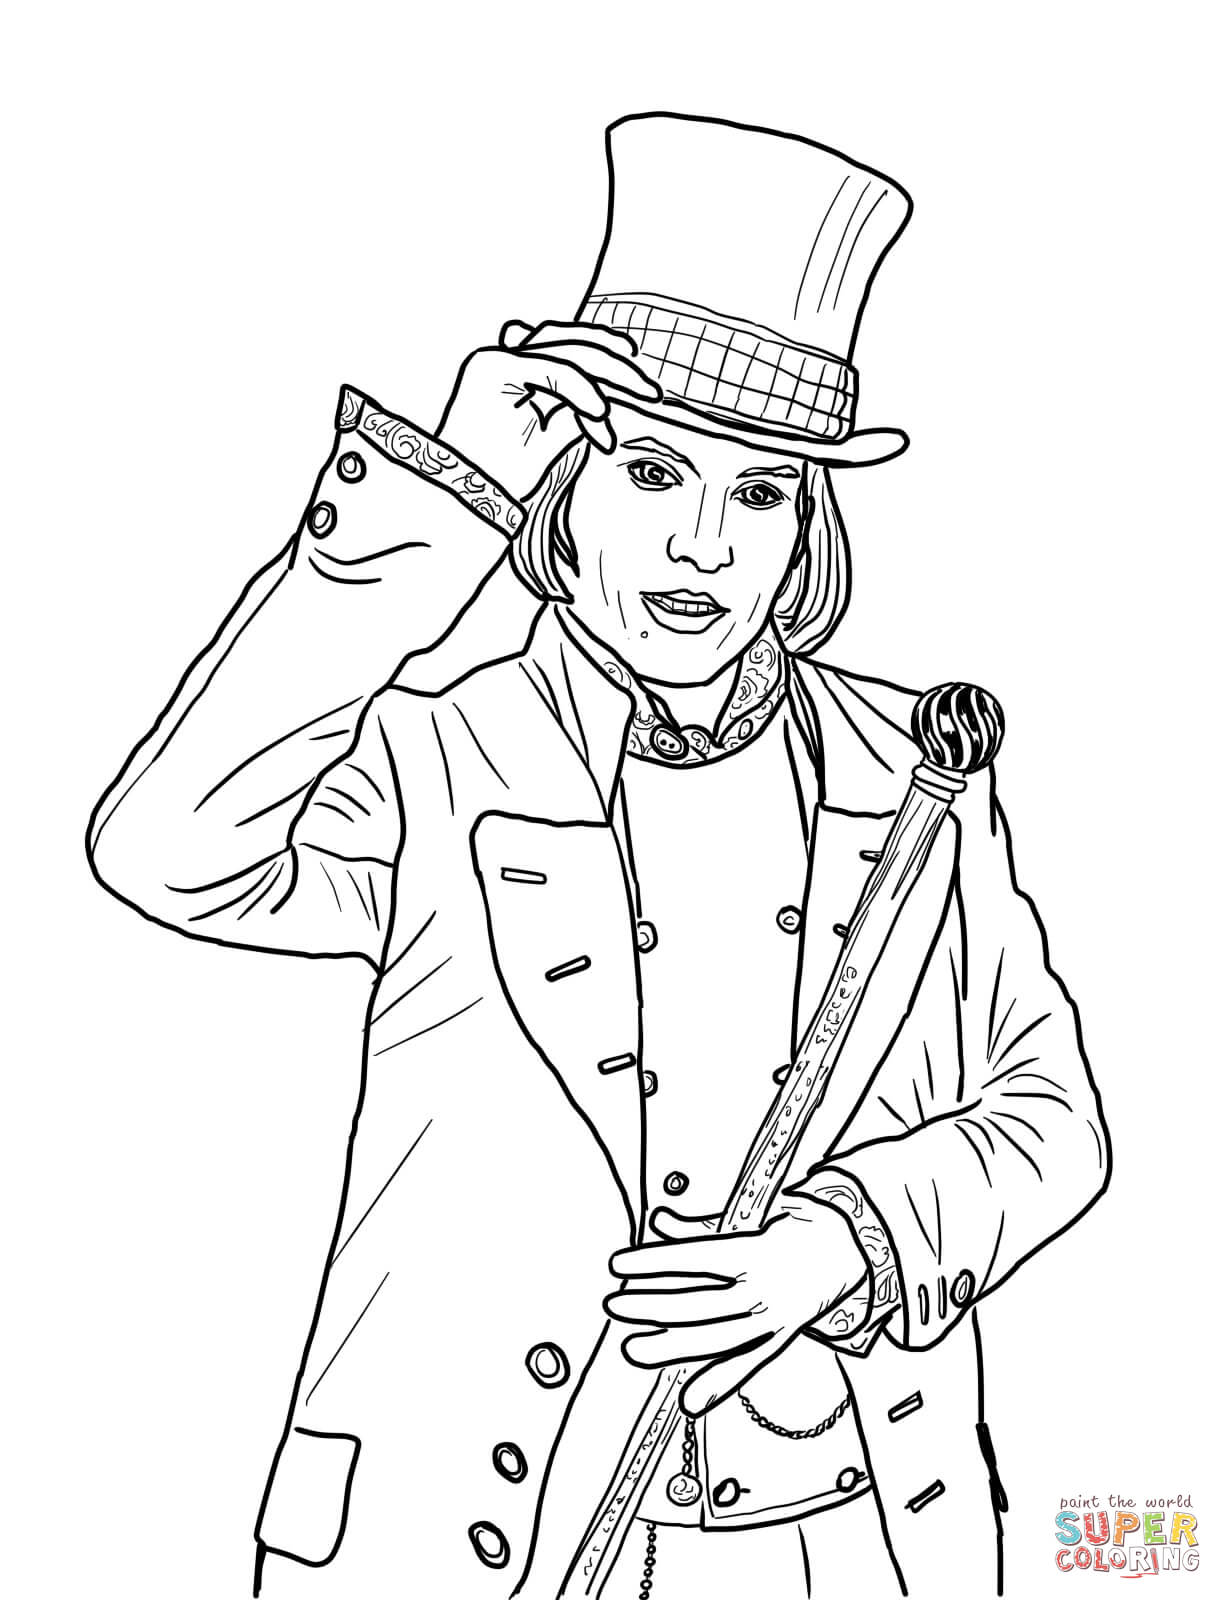 charlie and the chocolate factory pictures to print free coloring page coloring movie charlie et la factory and charlie to print chocolate the pictures